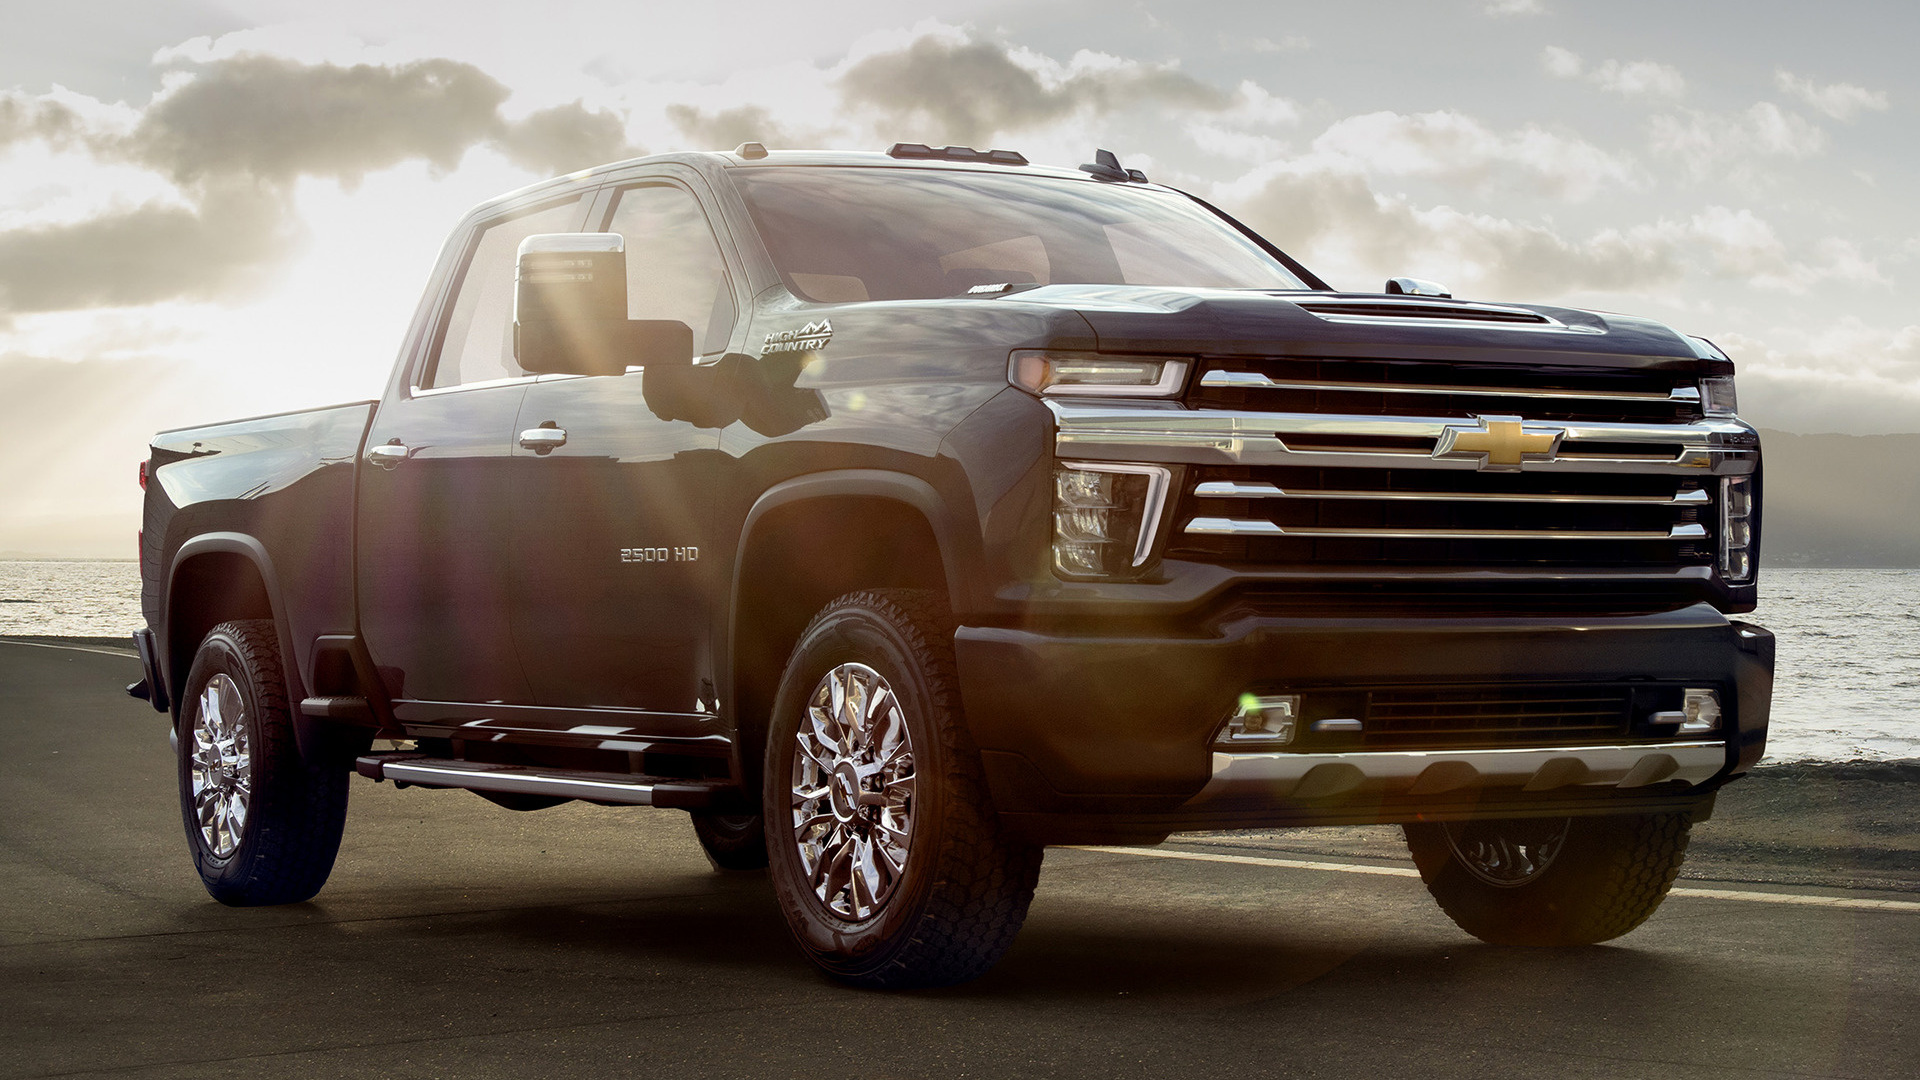 2020 Chevrolet Silverado 2500 HD High Country Crew Cab - Wallpapers and HD Images | Car Pixel